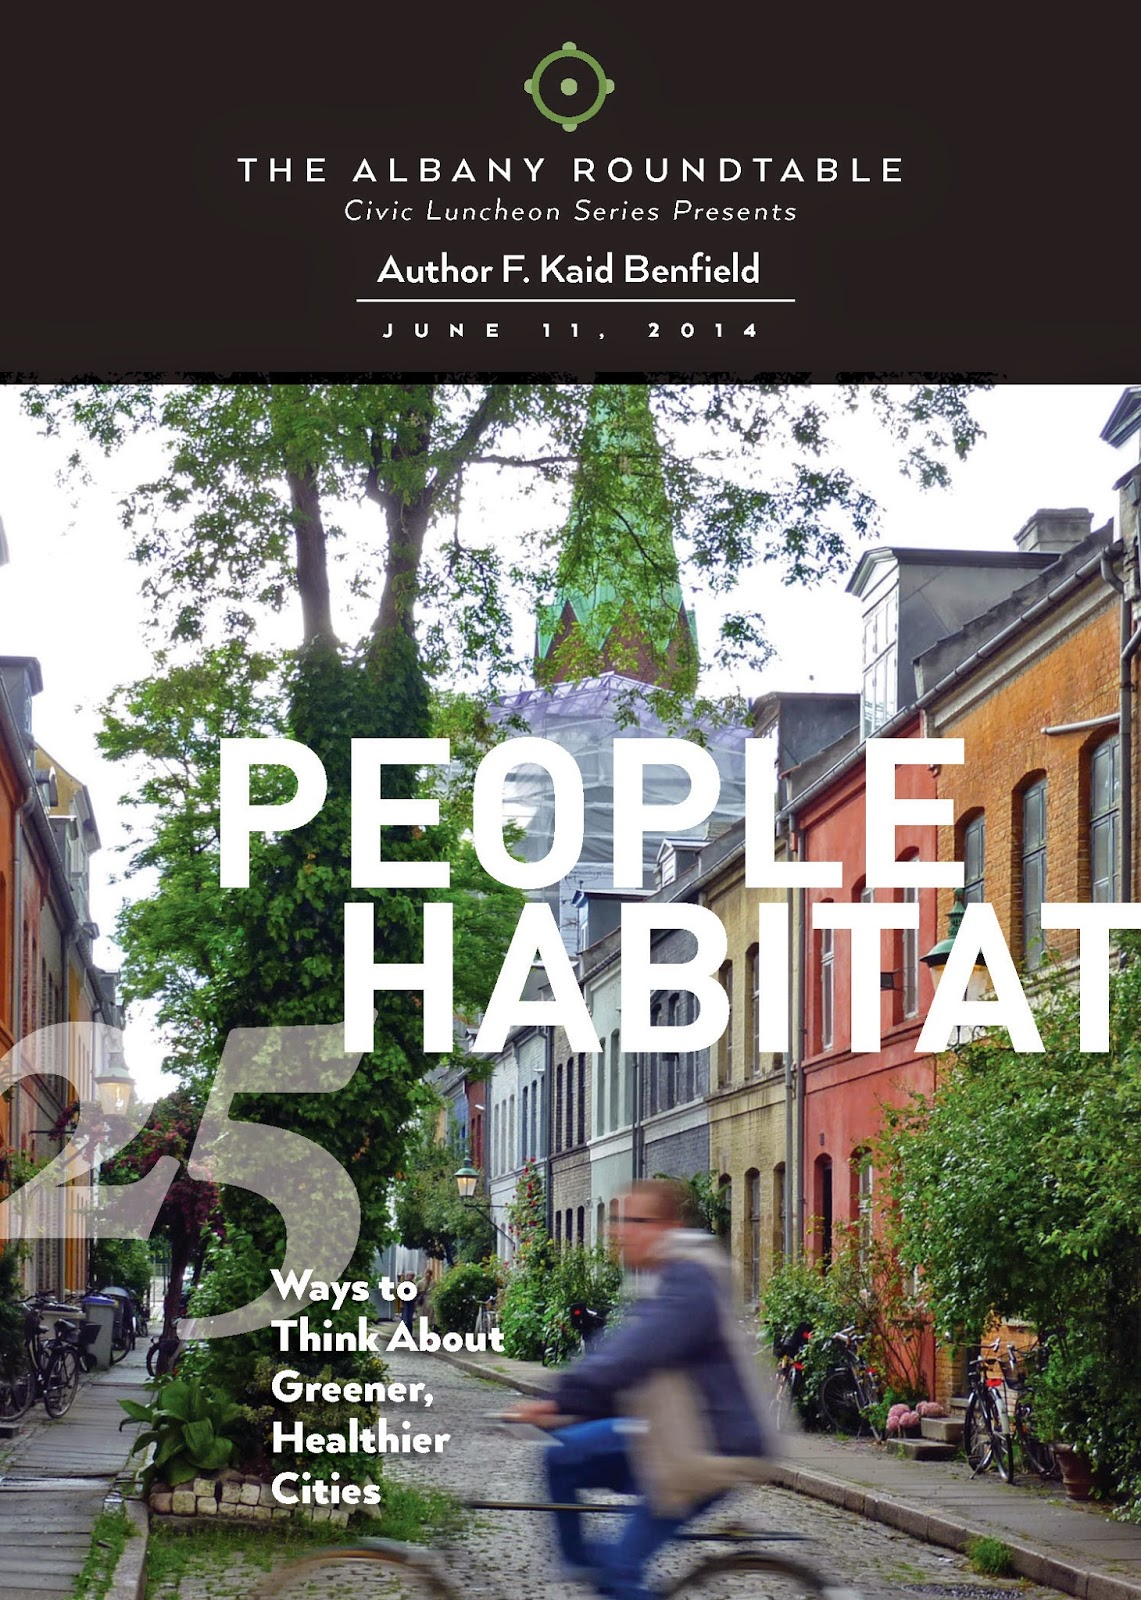 New york albany county albany 12224 - Kaid Benfield Special Counsel For Urban Solutions At The Natural Resources Defense Council In Washington D C And Author Of People Habitat Island Press